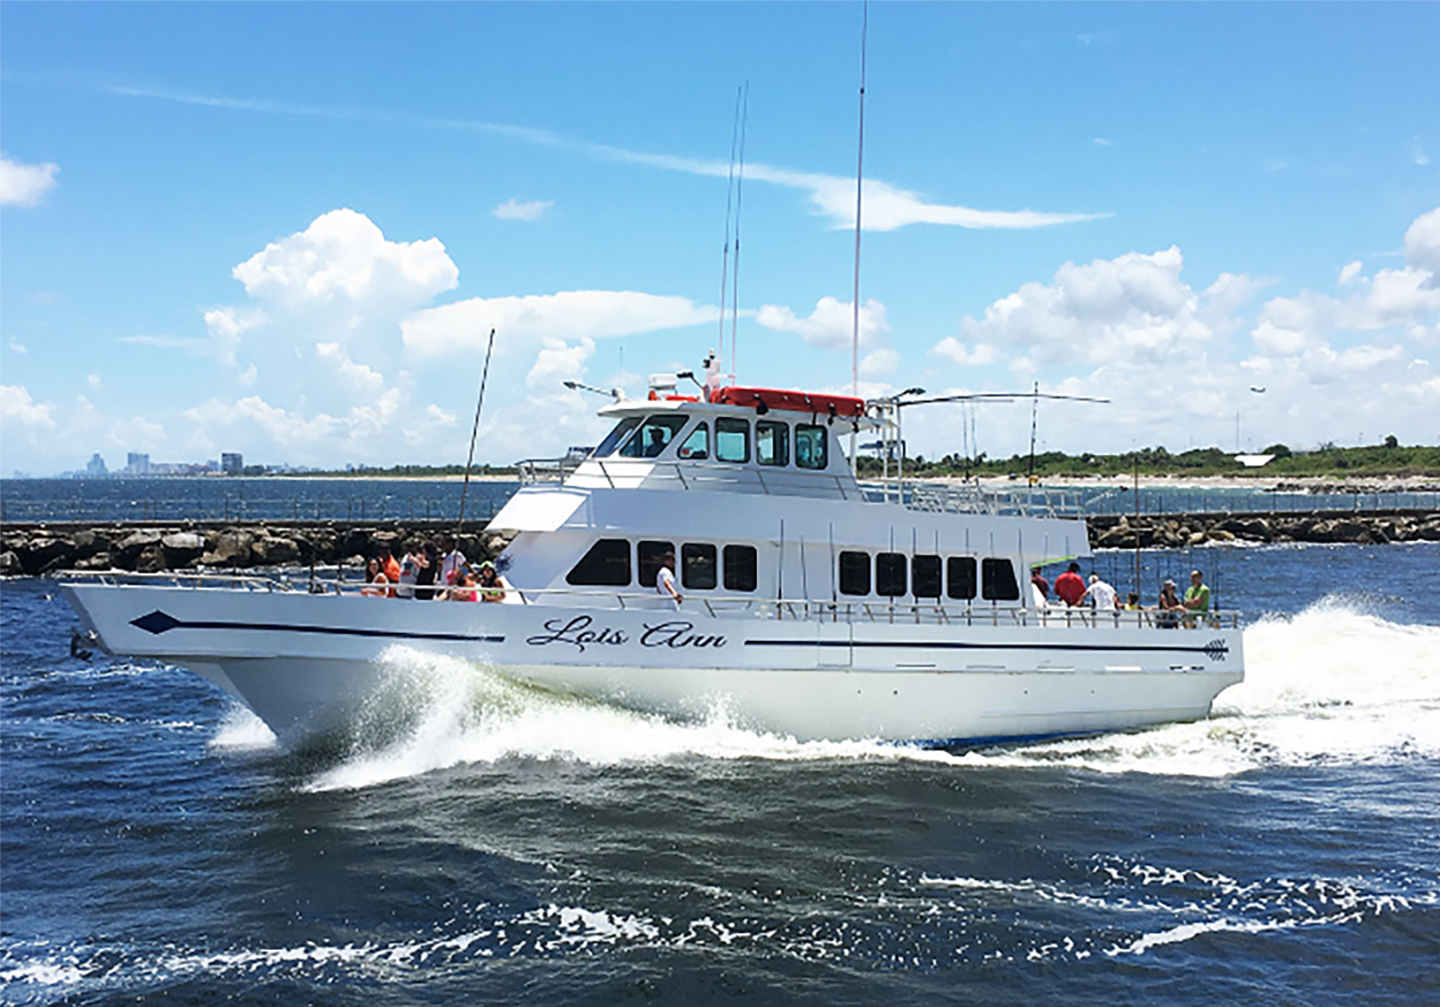 Big drift fishing party boat in Fort Lauderdale.